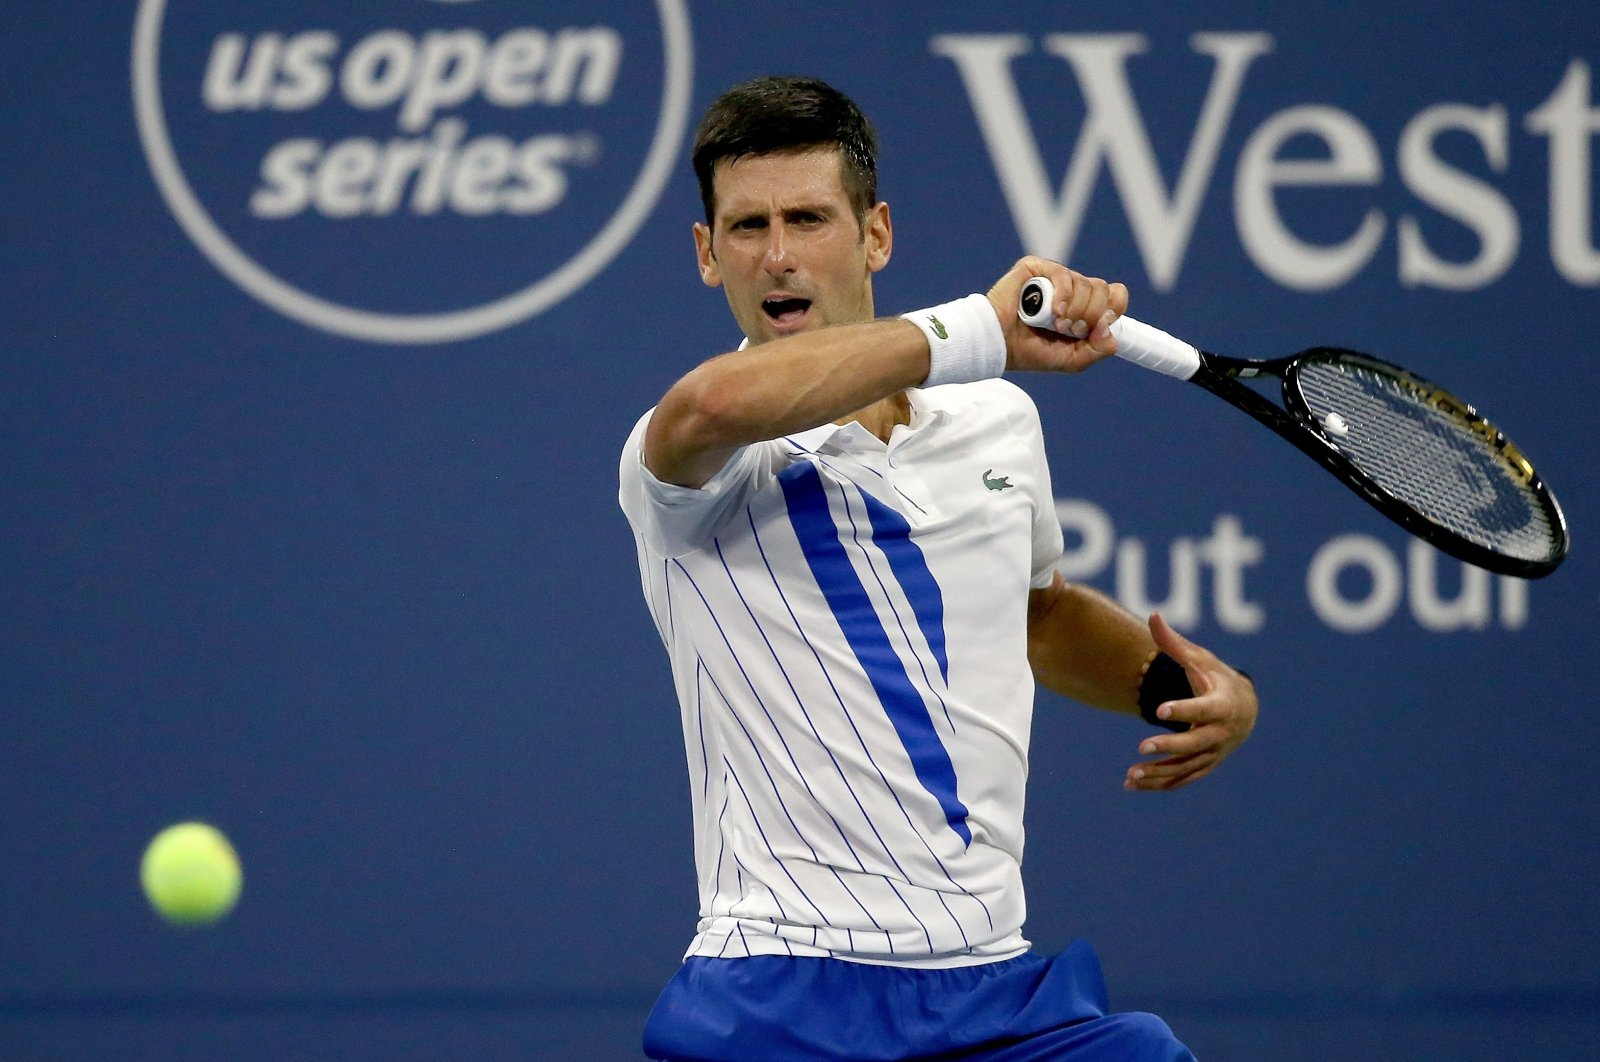 Novak Djokovic during the Western & Southern Open tournament in New York City, New York, U.S., Aug. 24, 2020. (AFP Photo)